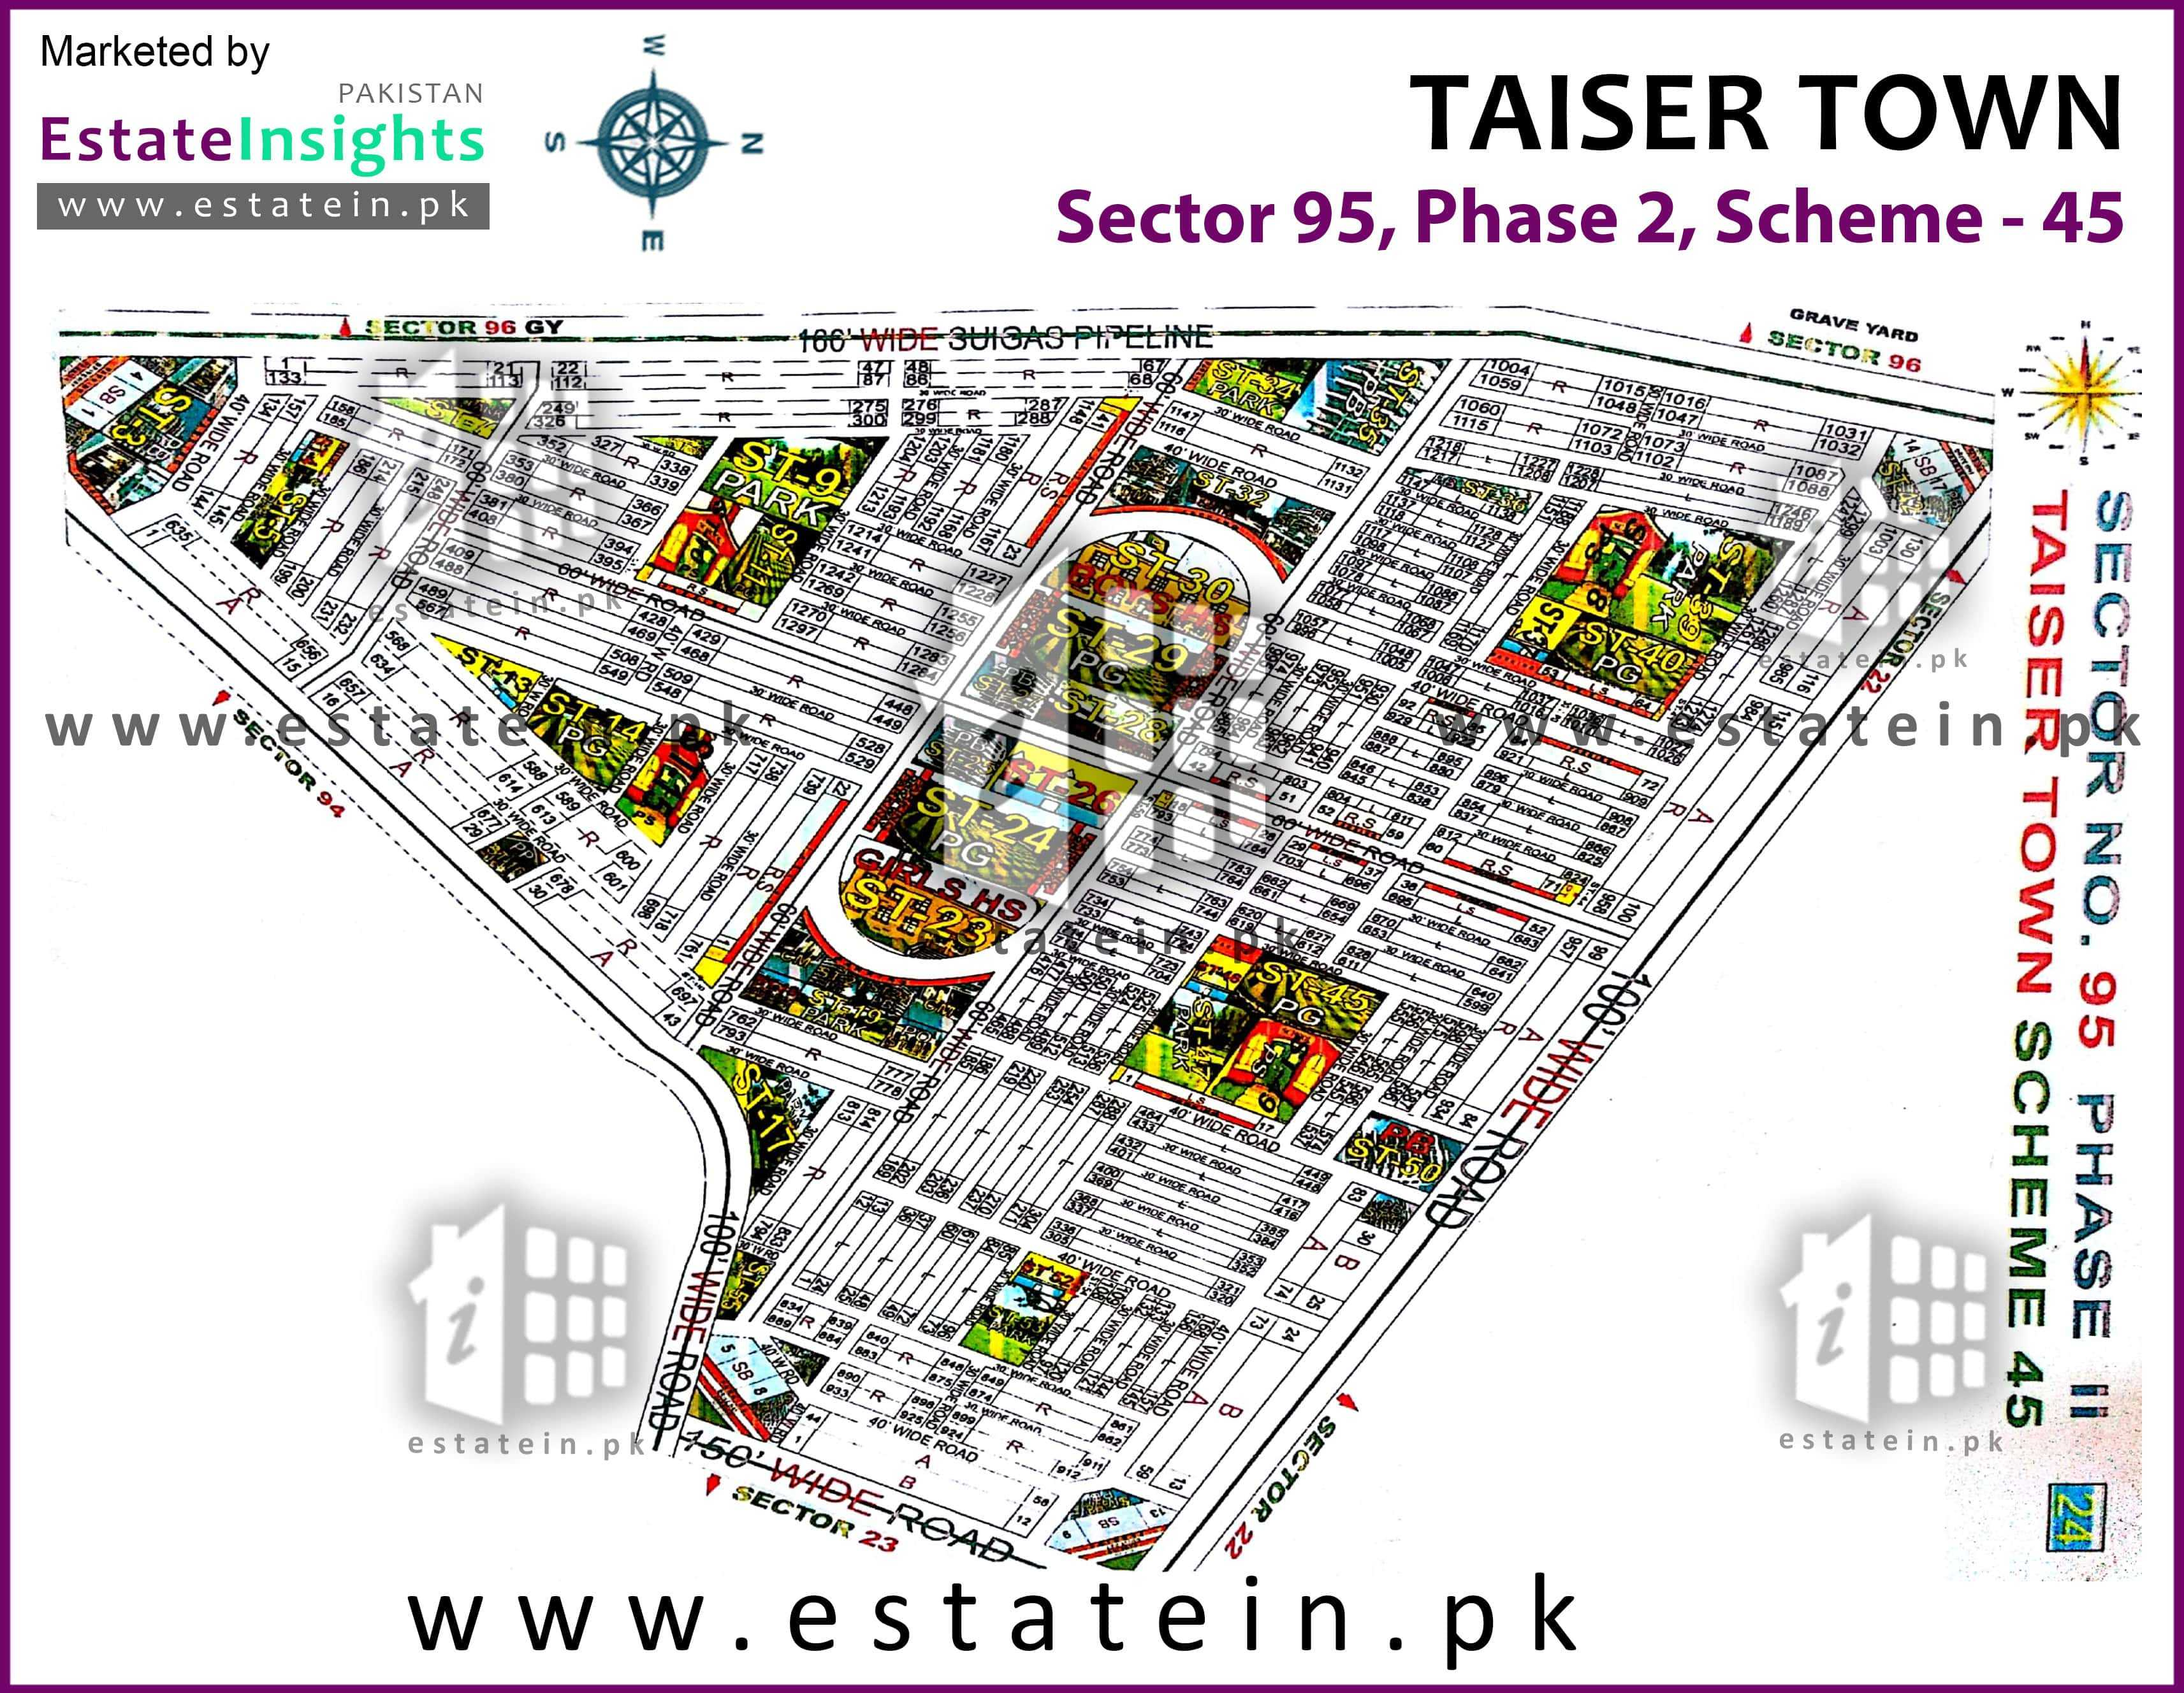 Site Plan of Sector 95 of Taiser Town Phase II